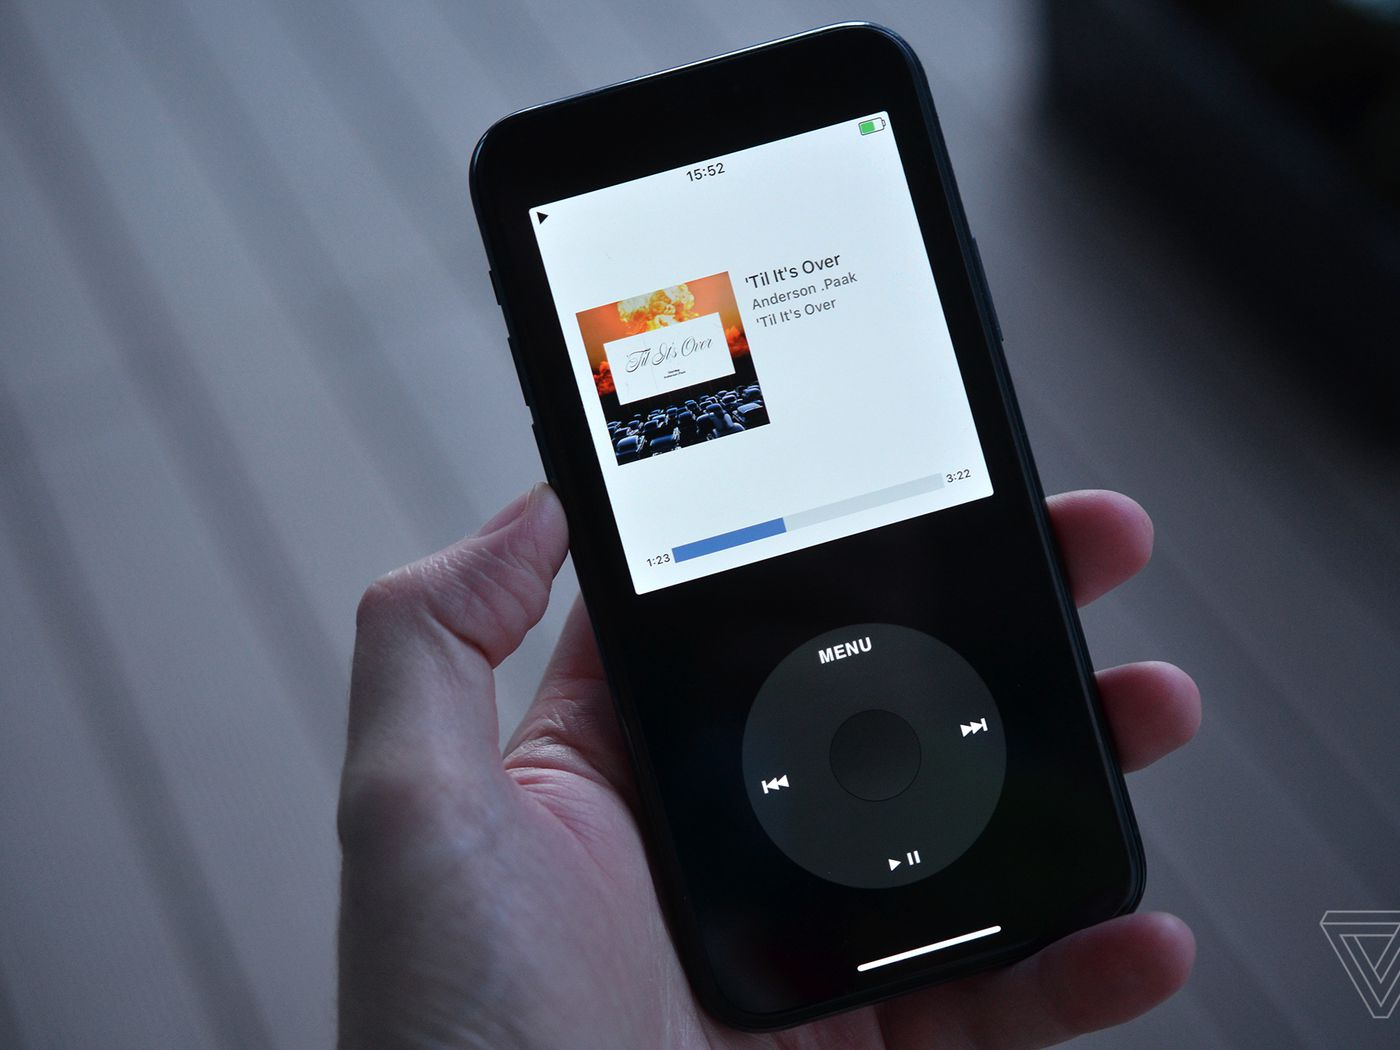 Rewound Is A New App That Turns Your Iphone Into An Ipod The Verge